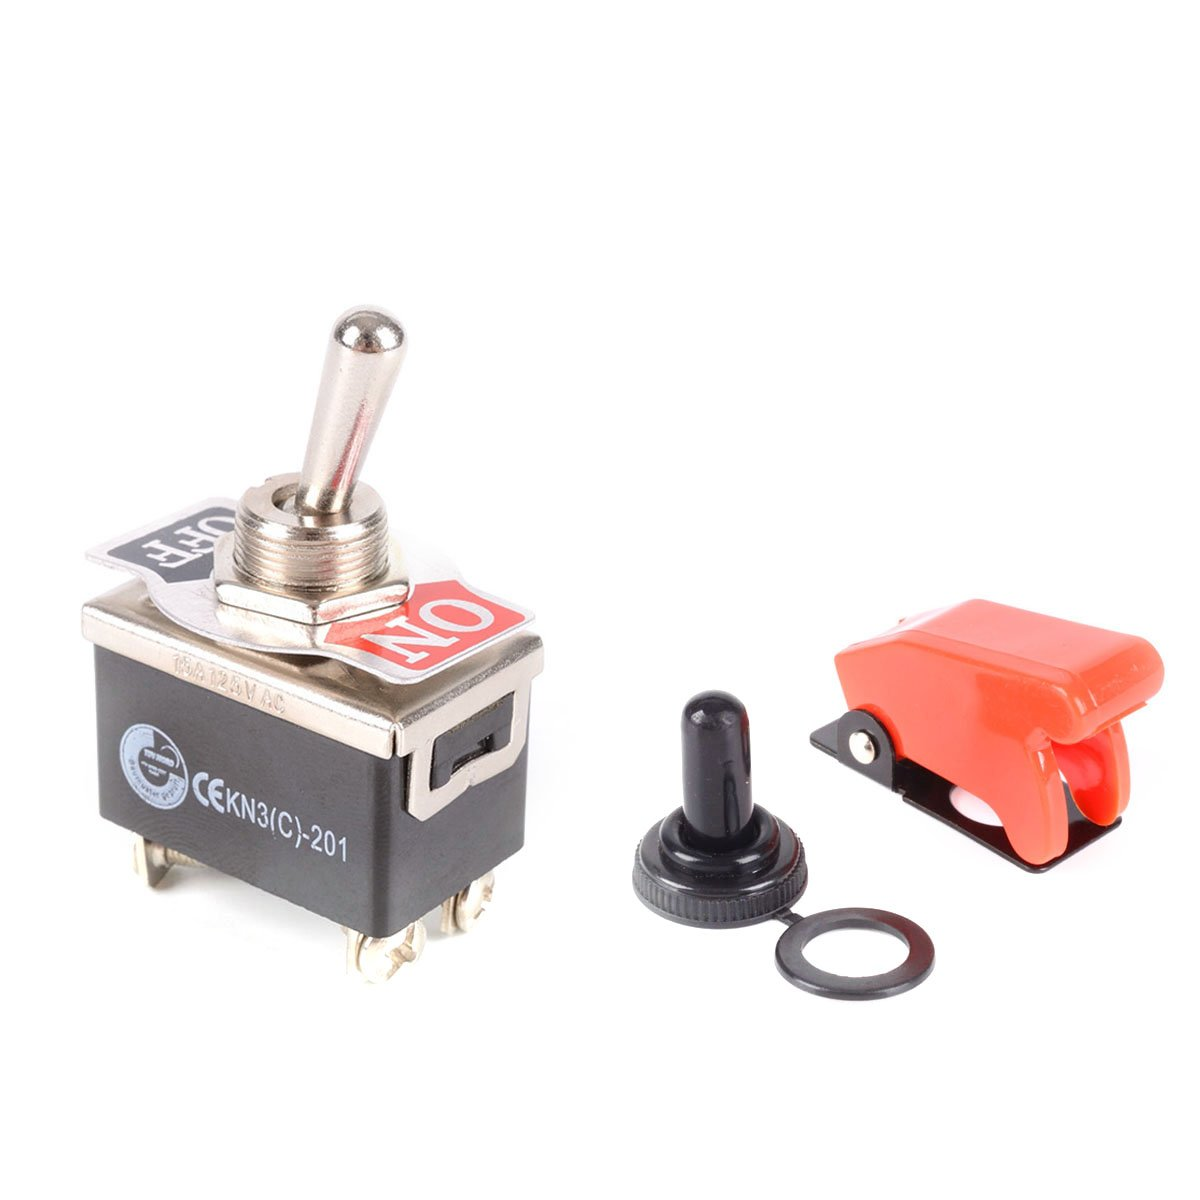 WINOMO Heavy Duty Toggle Switch Flick ON/OFF/ON Car Dash 12V DPDT with Waterproof Cap